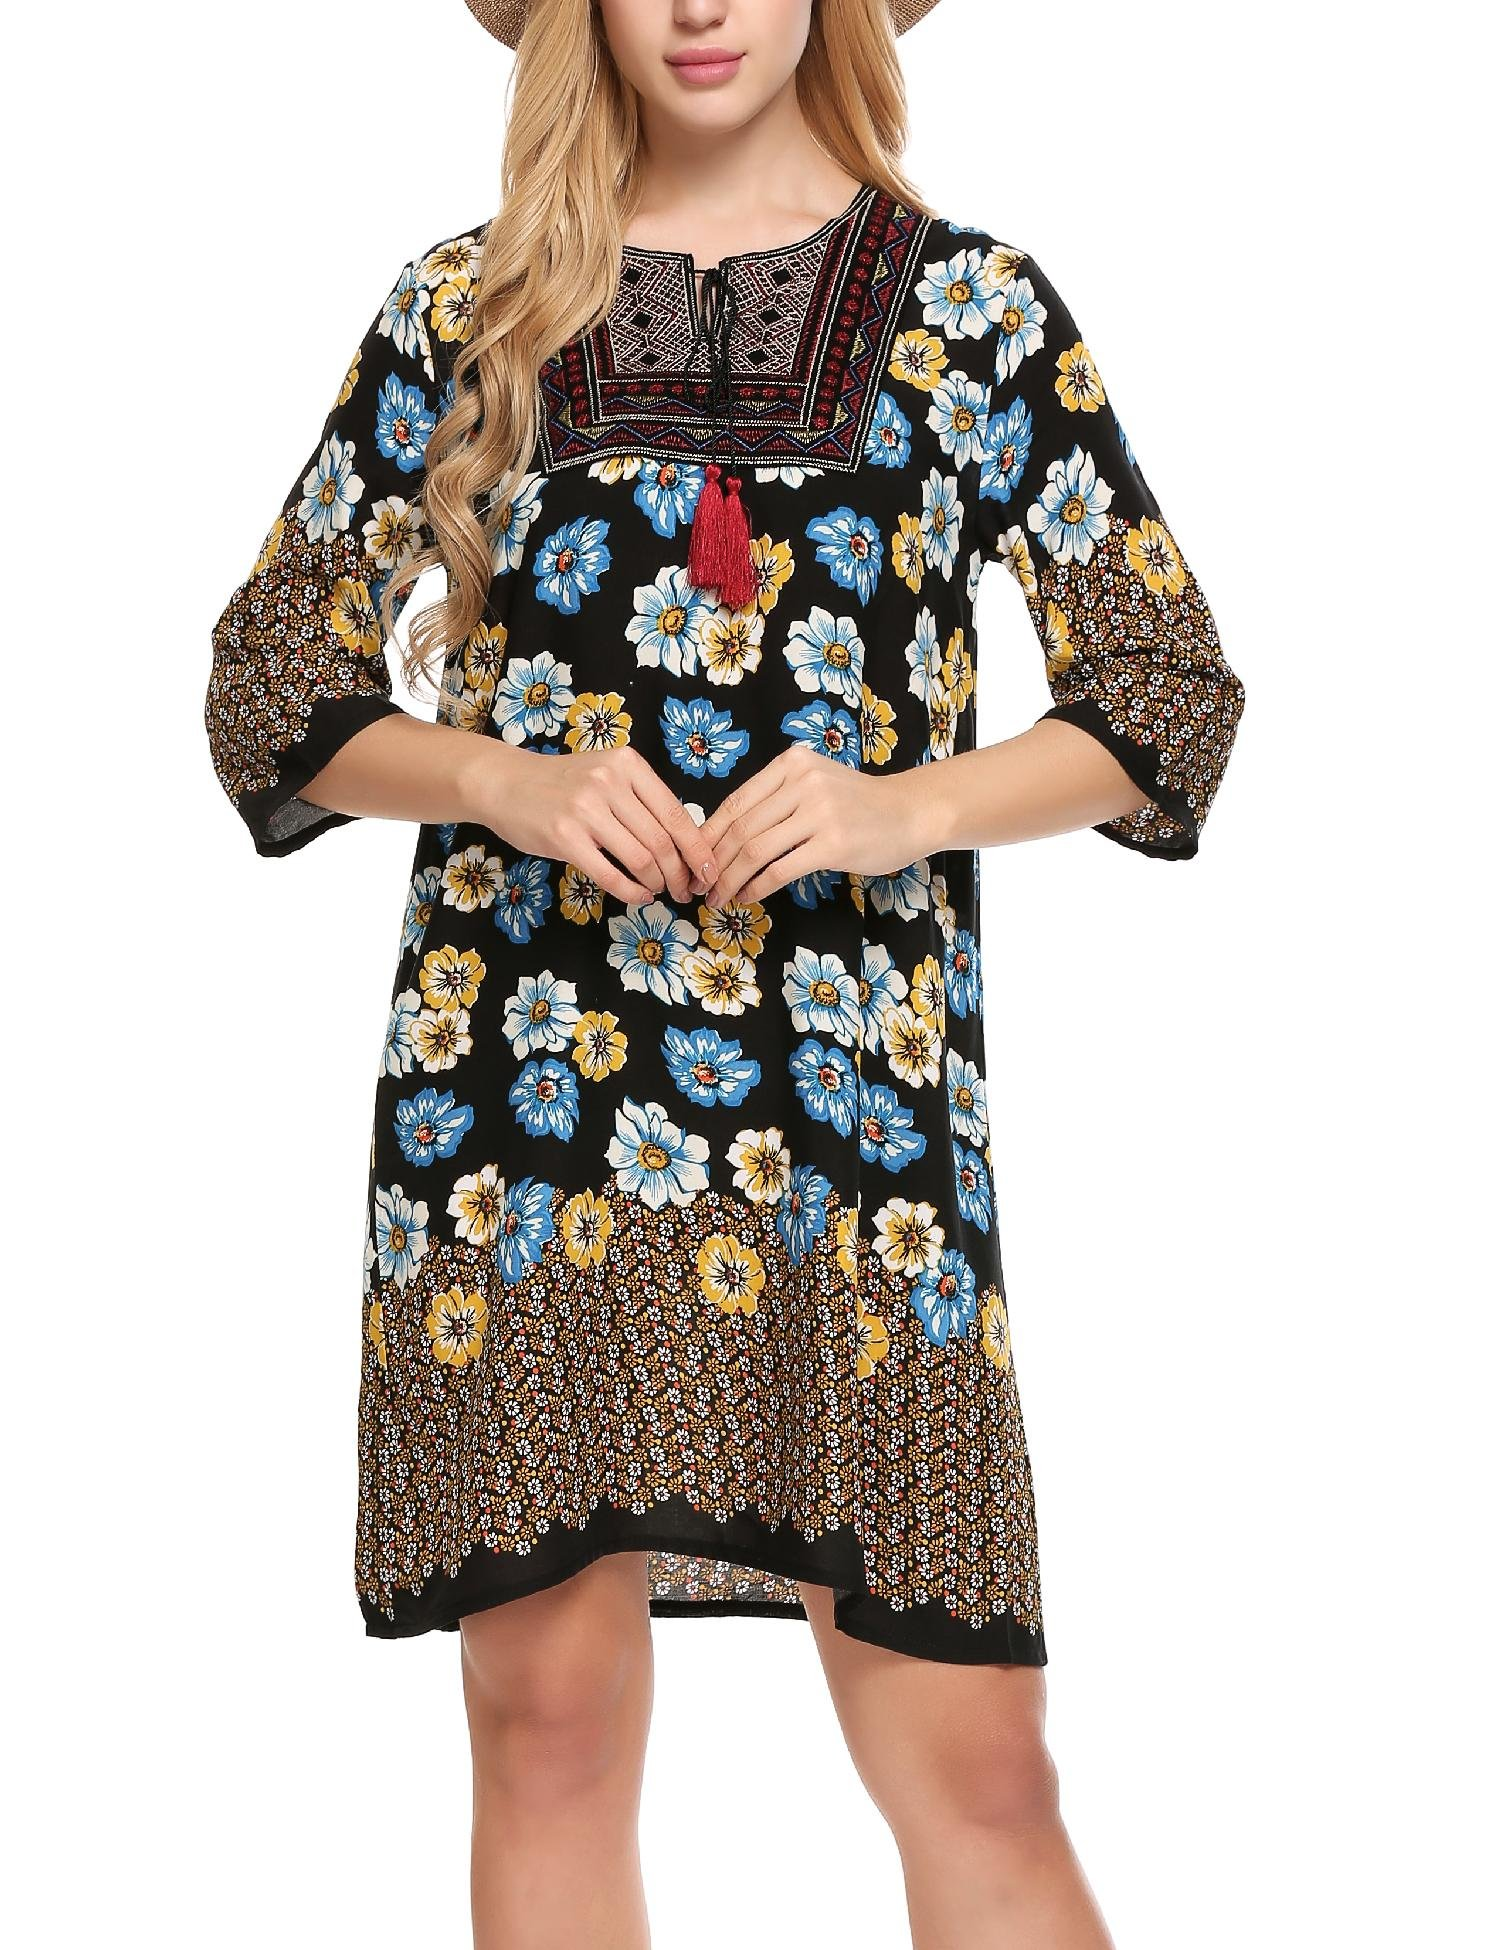 Elesol Women Summer Shift Dress Bohemian Neck Tie Vintage Printed Ethnic Style Pattern2 M